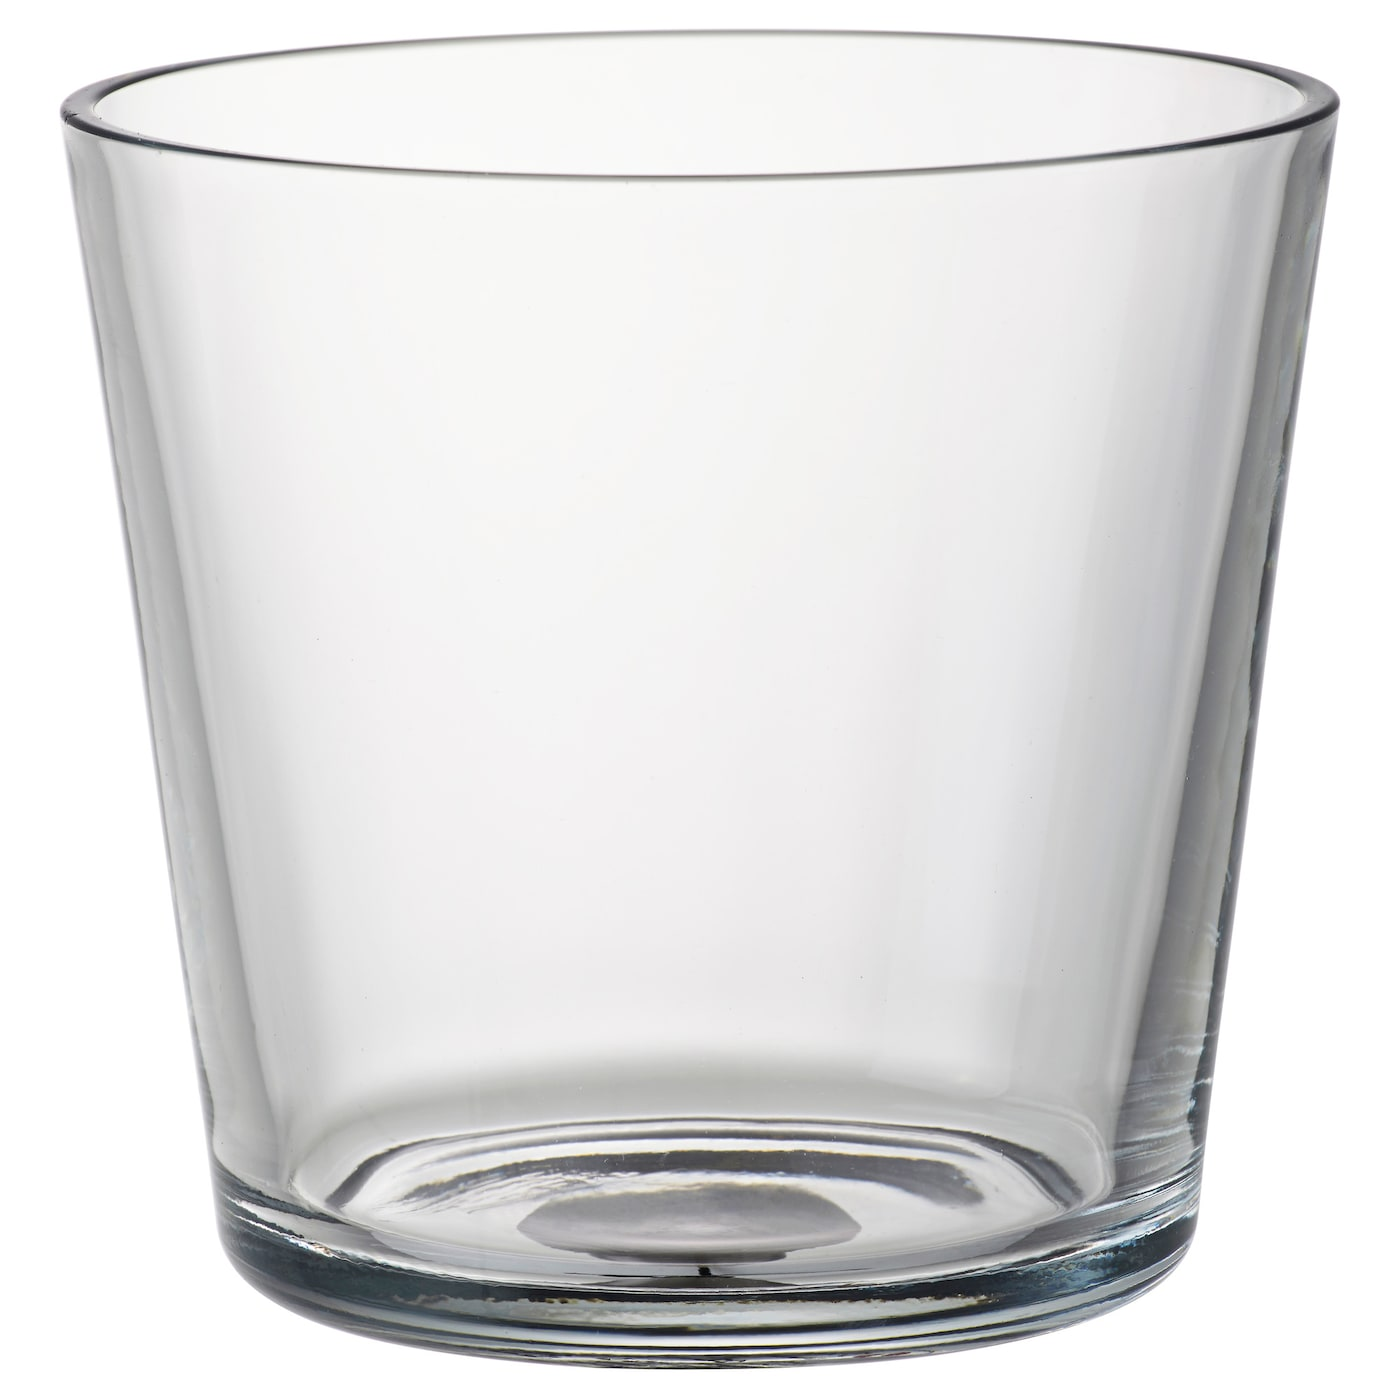 V gtorn plant pot clear glass 12 cm ikea - Ikea pot en verre ...